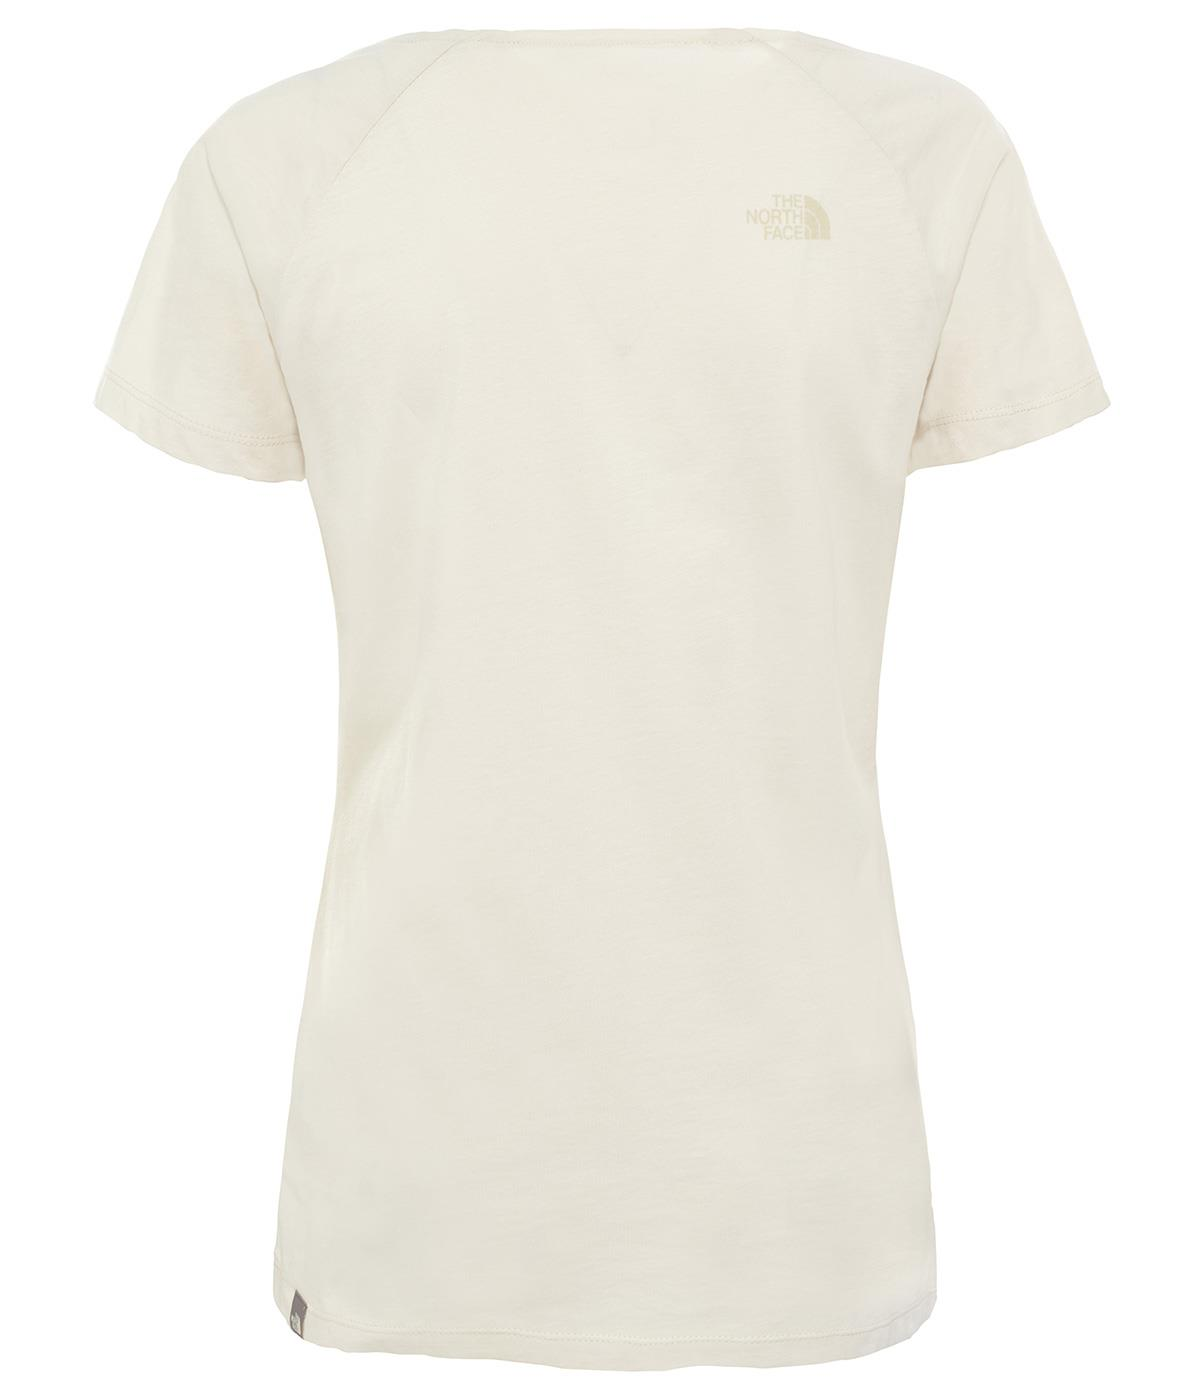 The Northface Kadın S/S Raglan Simple Dome Tee-Eu T93Box11P Tişört